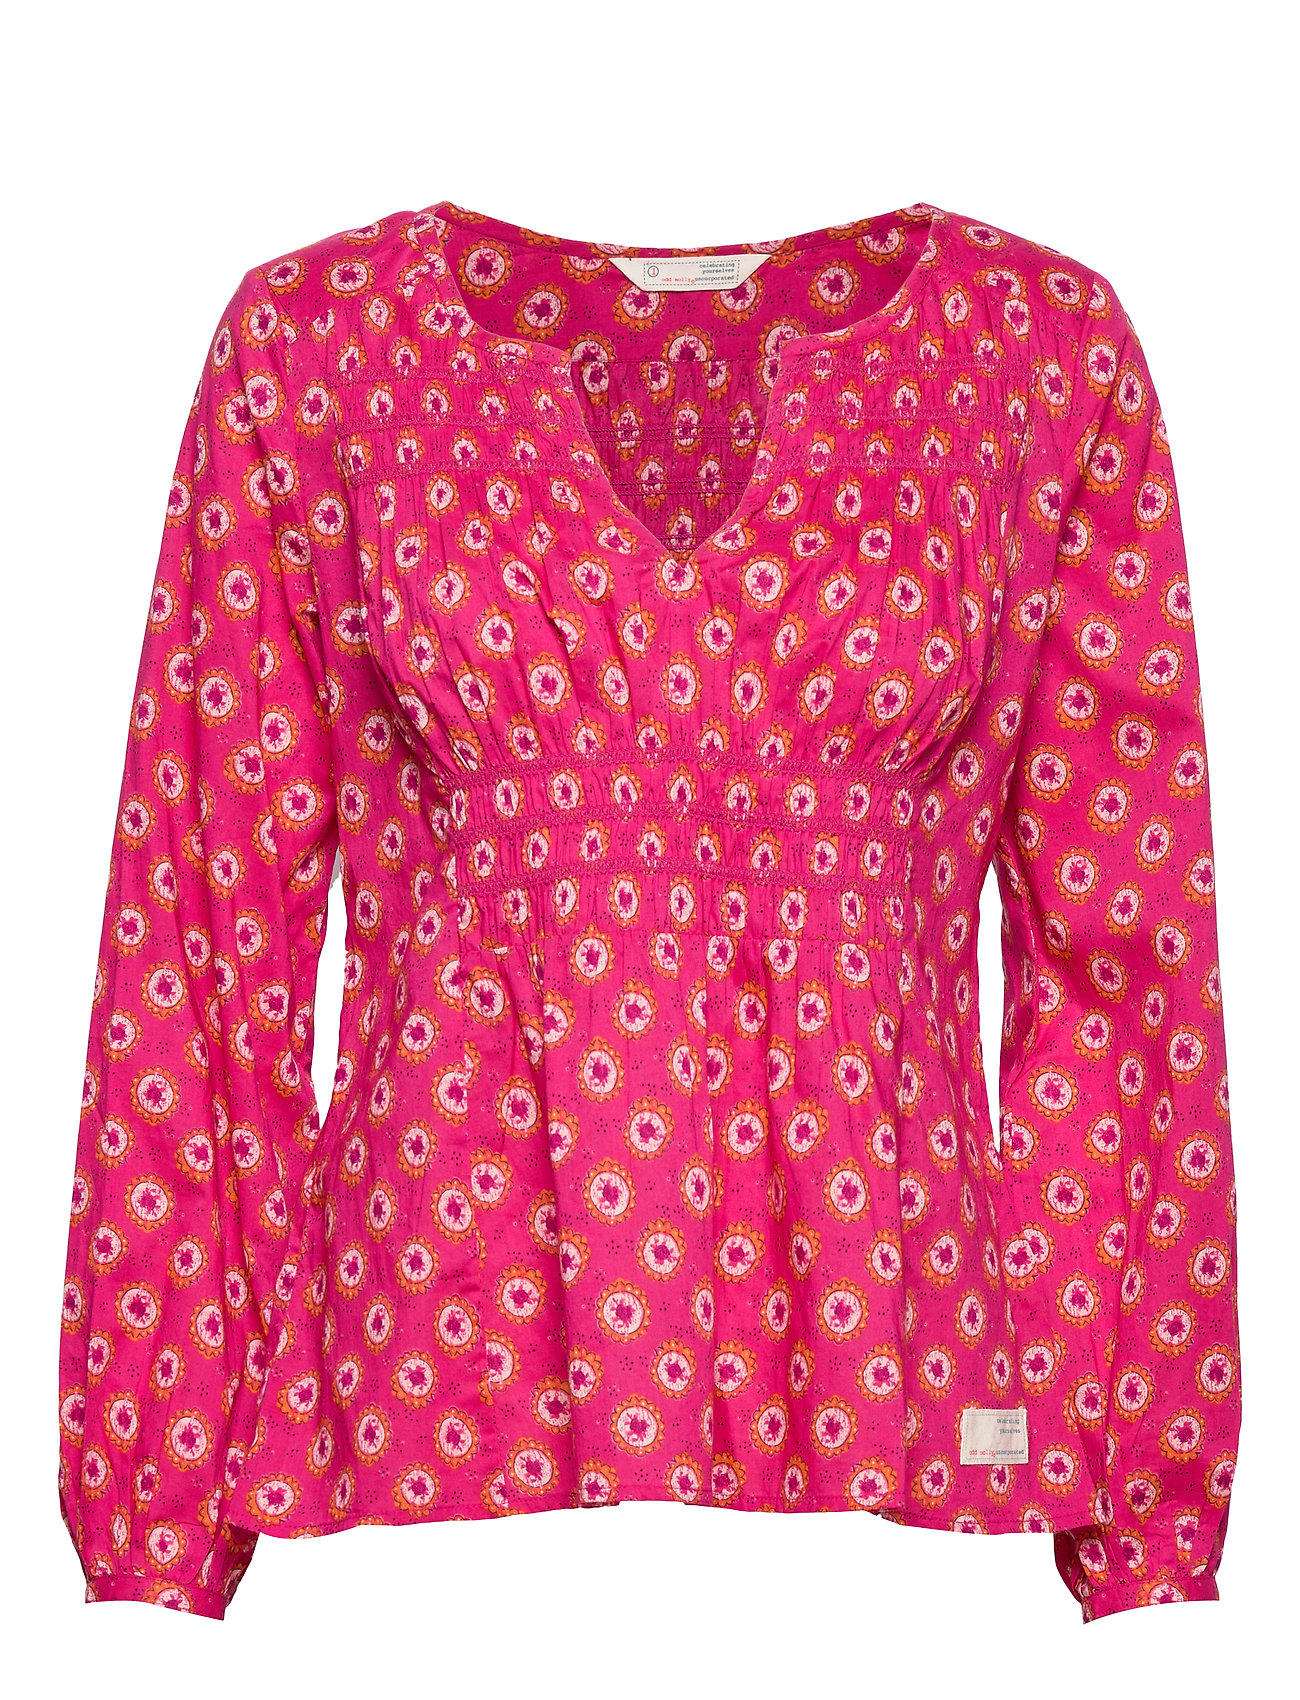 ODD MOLLY Calling For Blouse - DEEP PINK